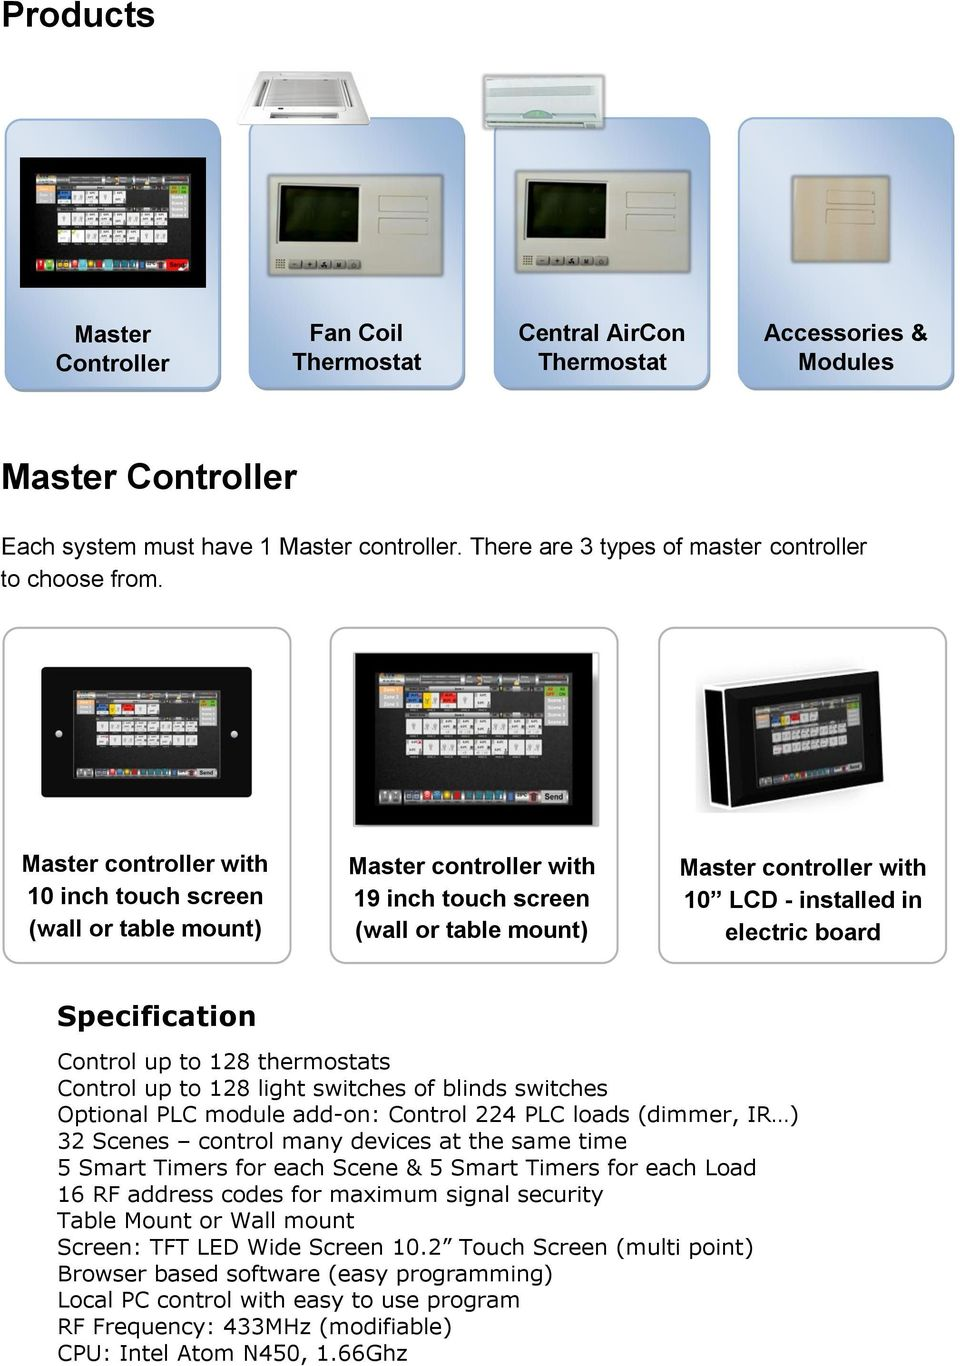 Master controller with 10 inch touch screen (wall or table mount) Master controller with 19 inch touch screen (wall or table mount) Master controller with 10 LCD - installed in electric board